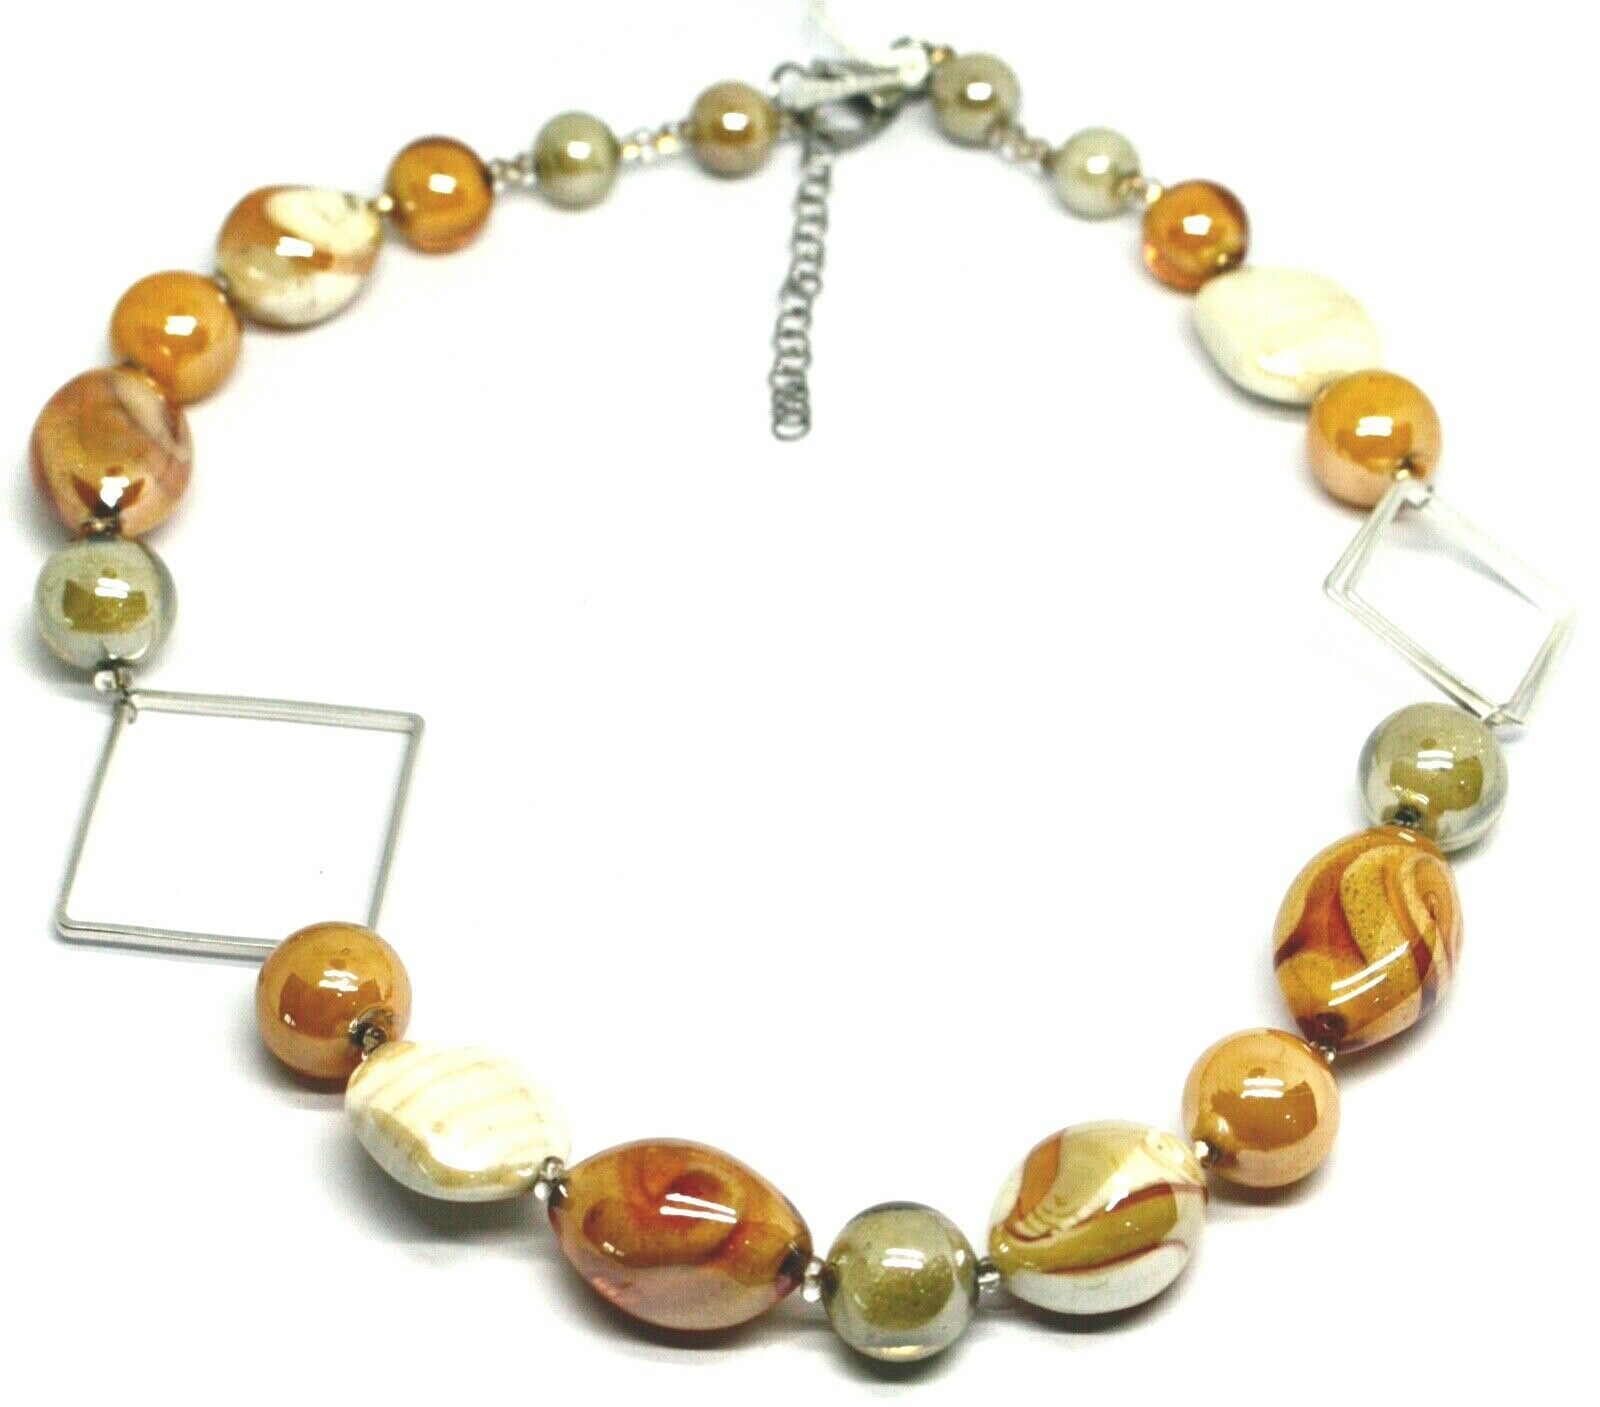 NECKLACE ORANGE WHITE ROUNDED DROP, SPHERE EXAGON MURANO GLASS SQUARE ITALY MADE